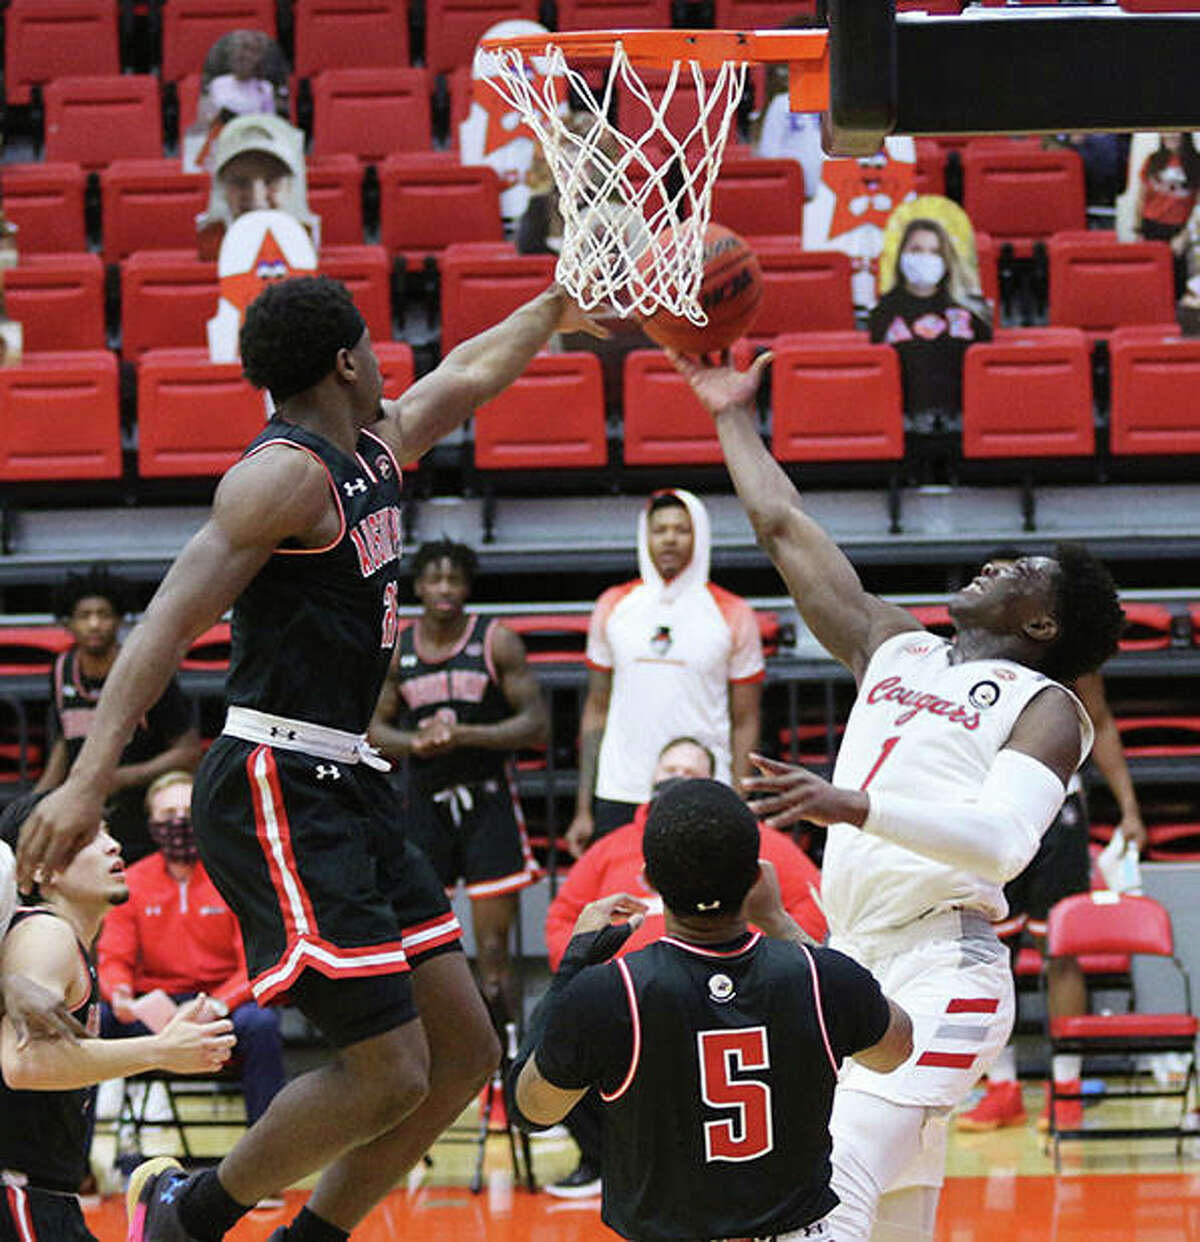 SIUE's Mike Adewunmi (1) extends to get a shot off over Austin Peay's Terry Taylor (left) while Jordyn Adams (5) watches the play Monday in Edwardsville.